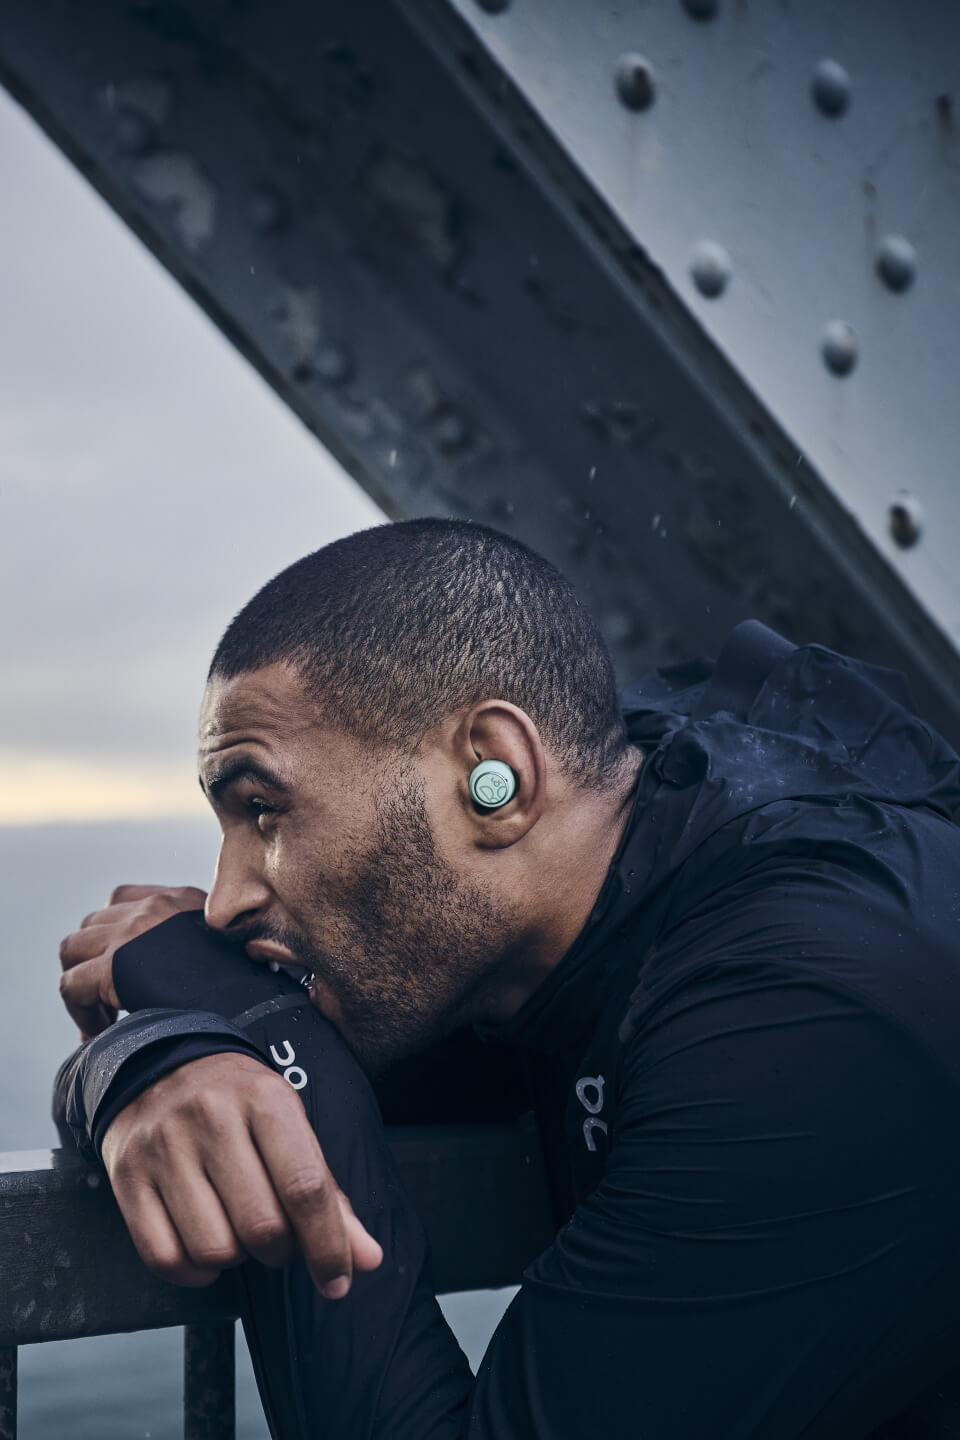 BeoPlay E8 Sport - IP57 certified